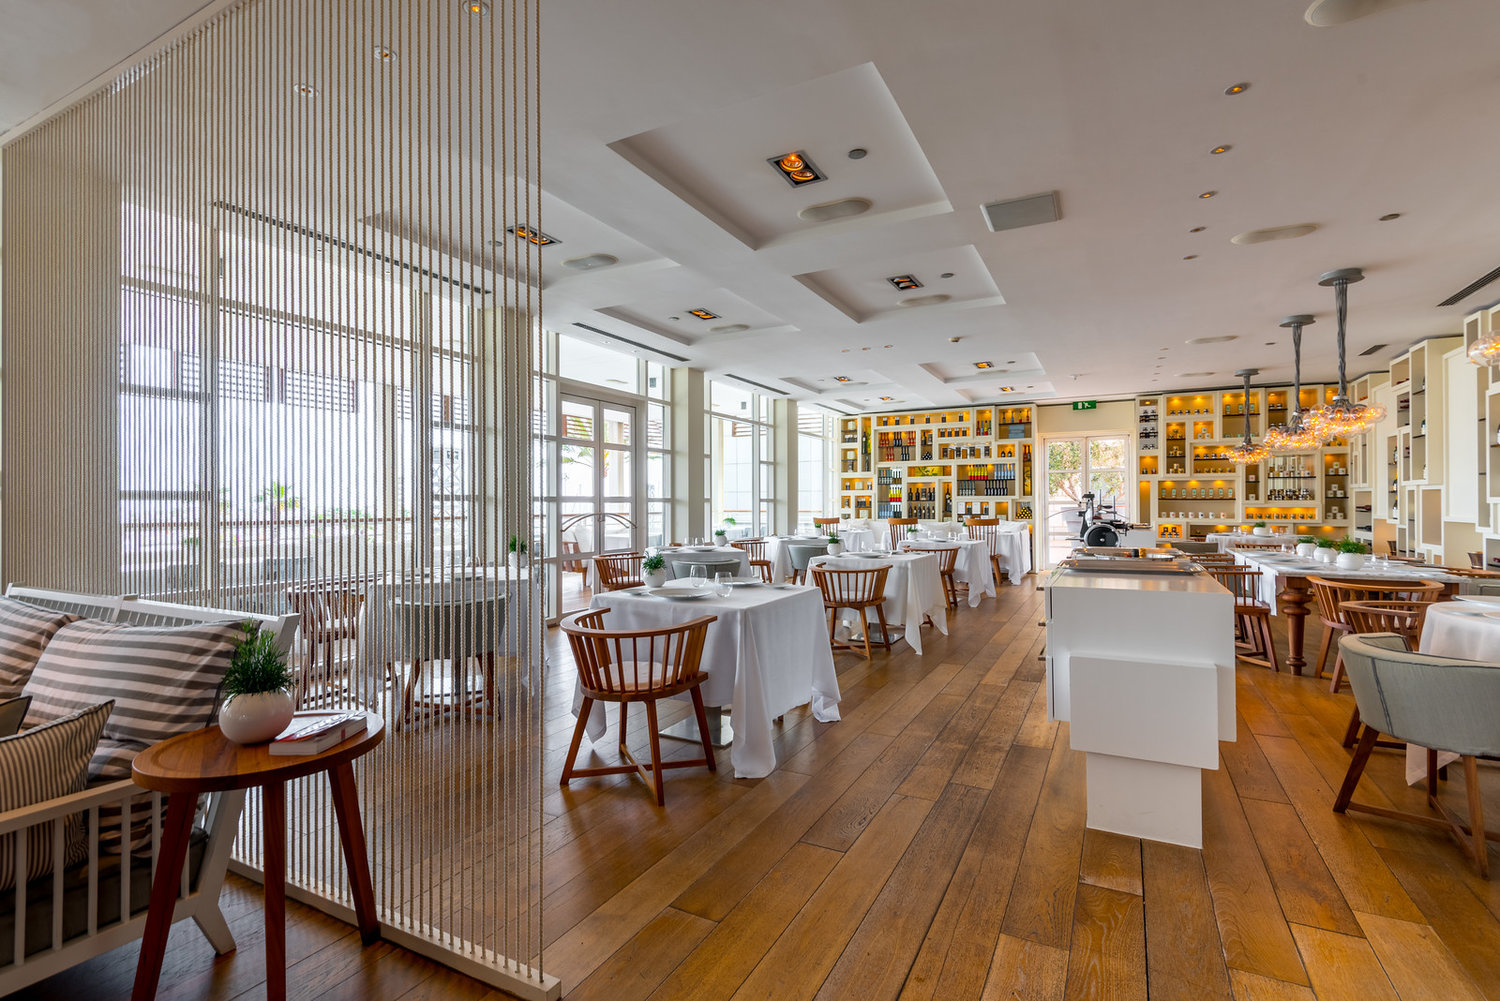 25 - Top 7 rated restaurants in Catalunya